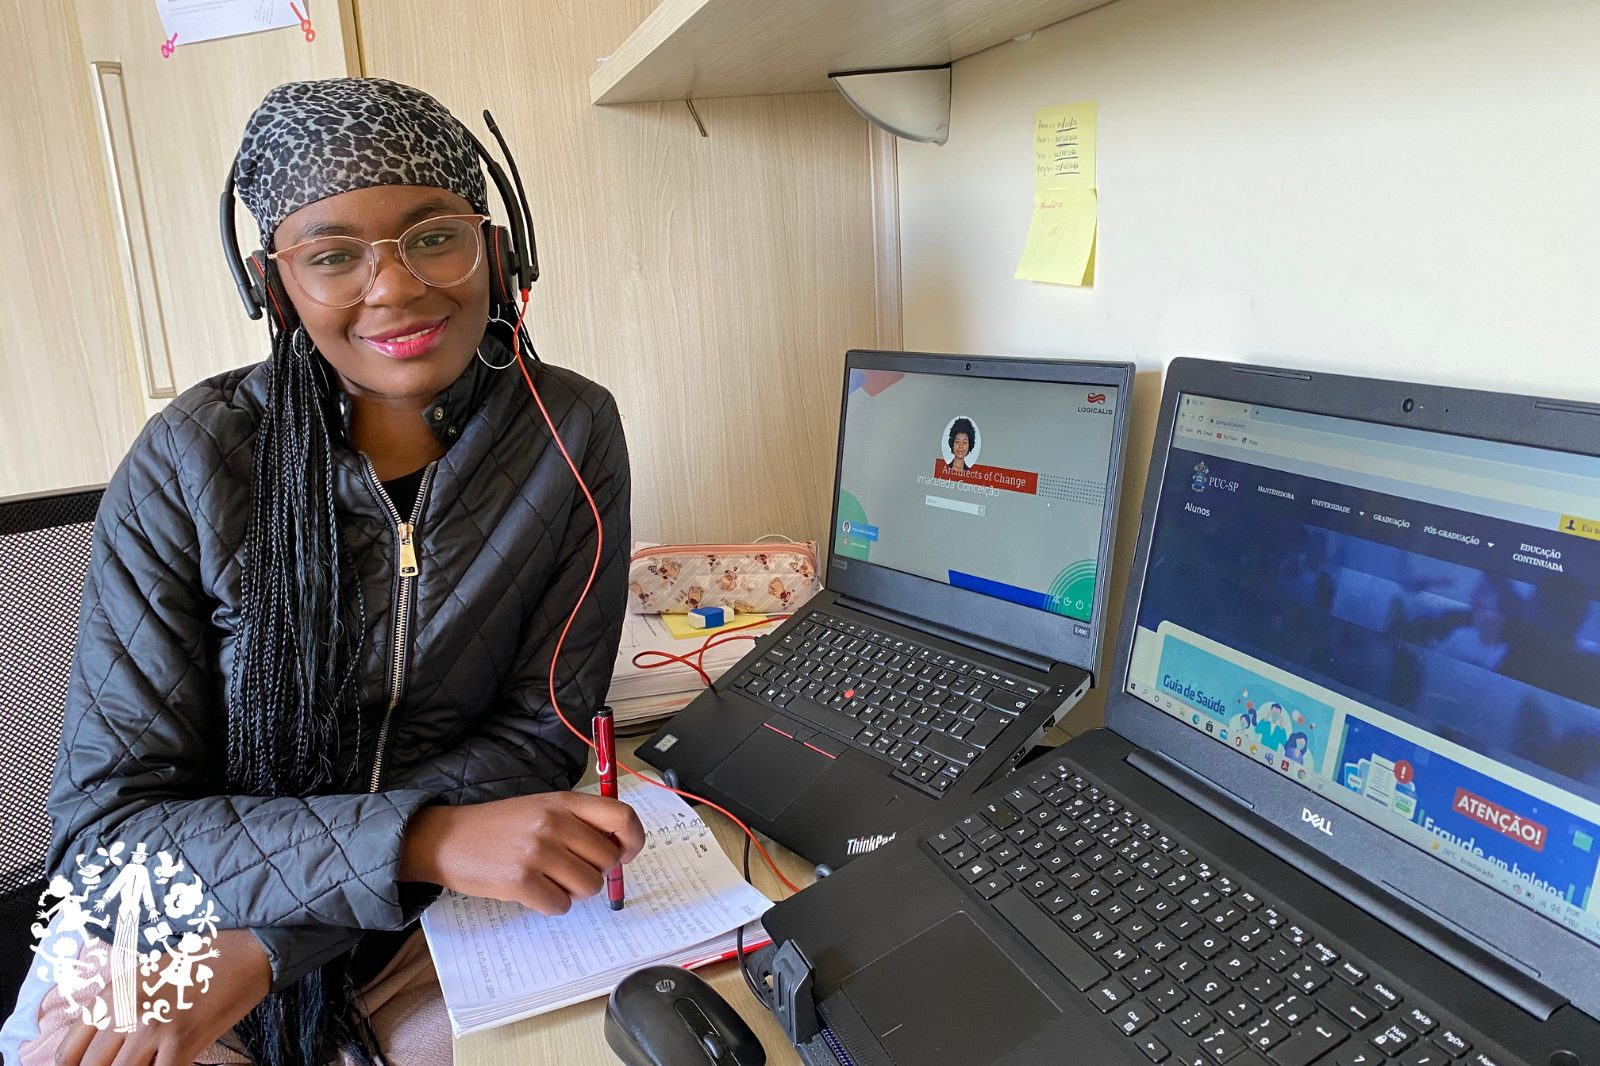 Lusophone AAI Scholar: My Life During the Pandemic